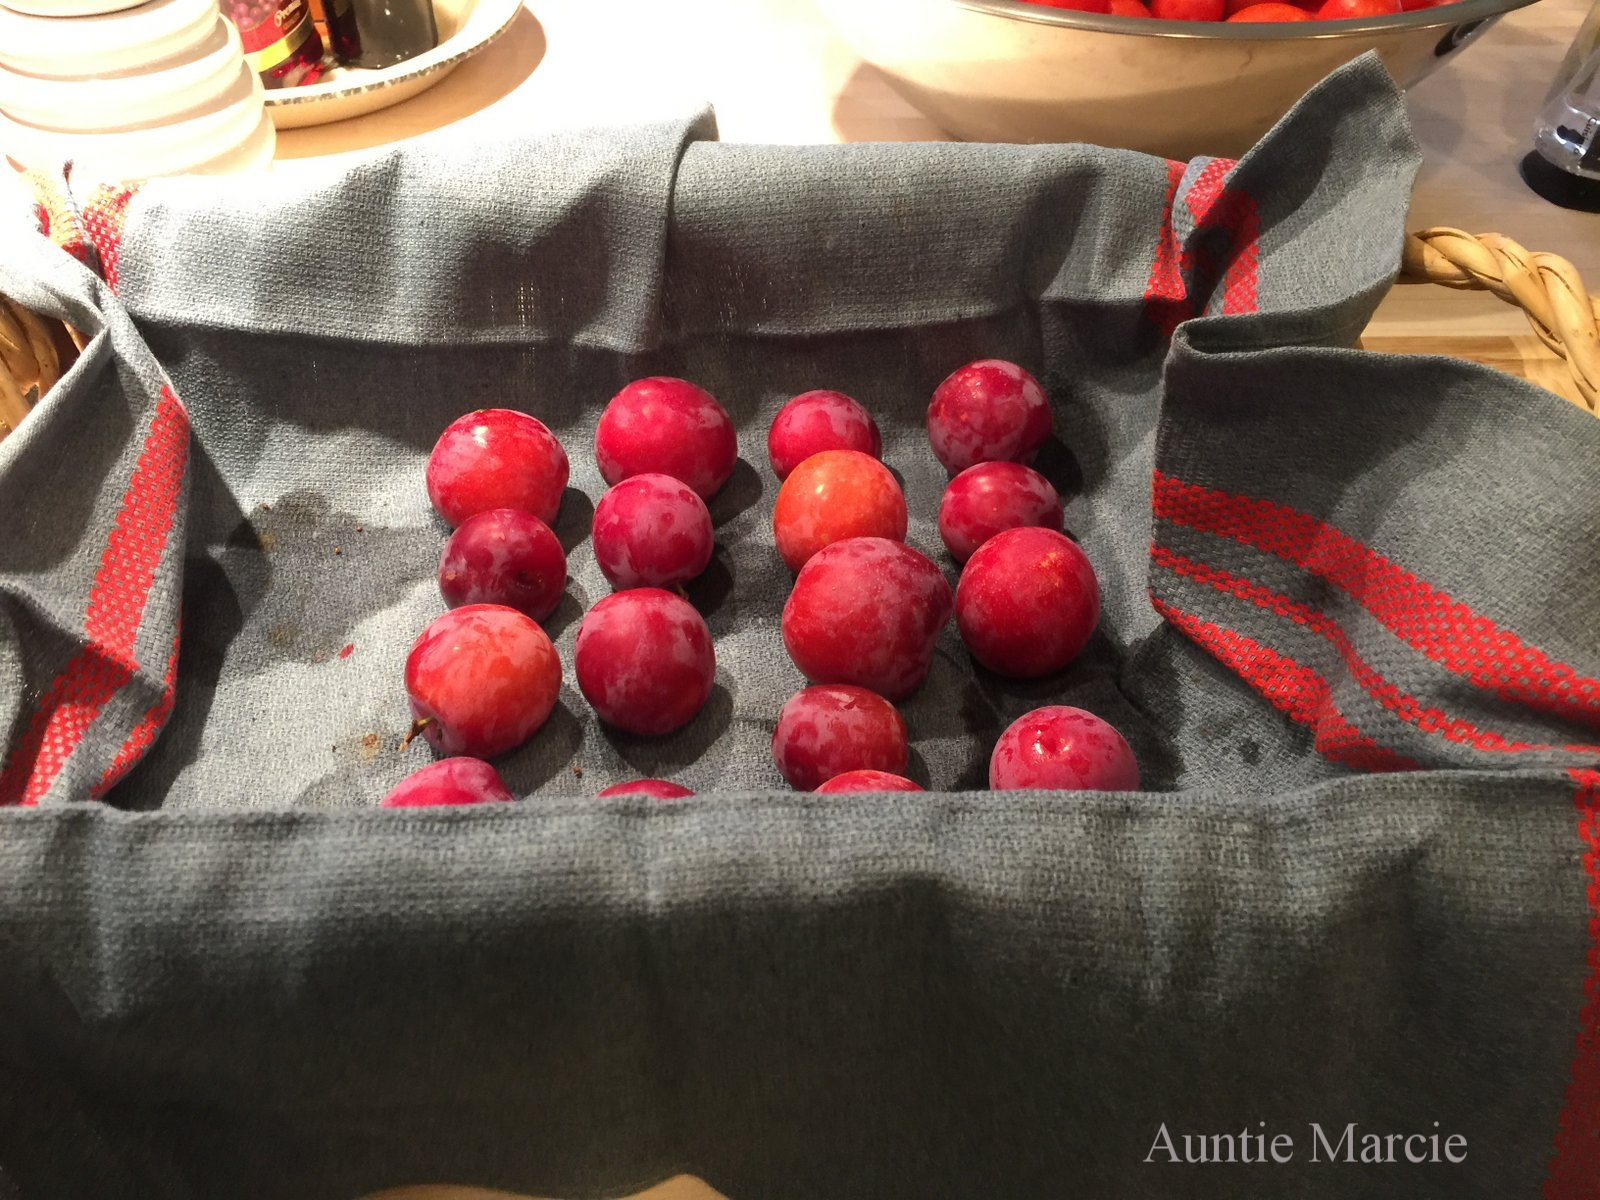 Sour Plum Jam (with pits left in) — Auntie Marcie